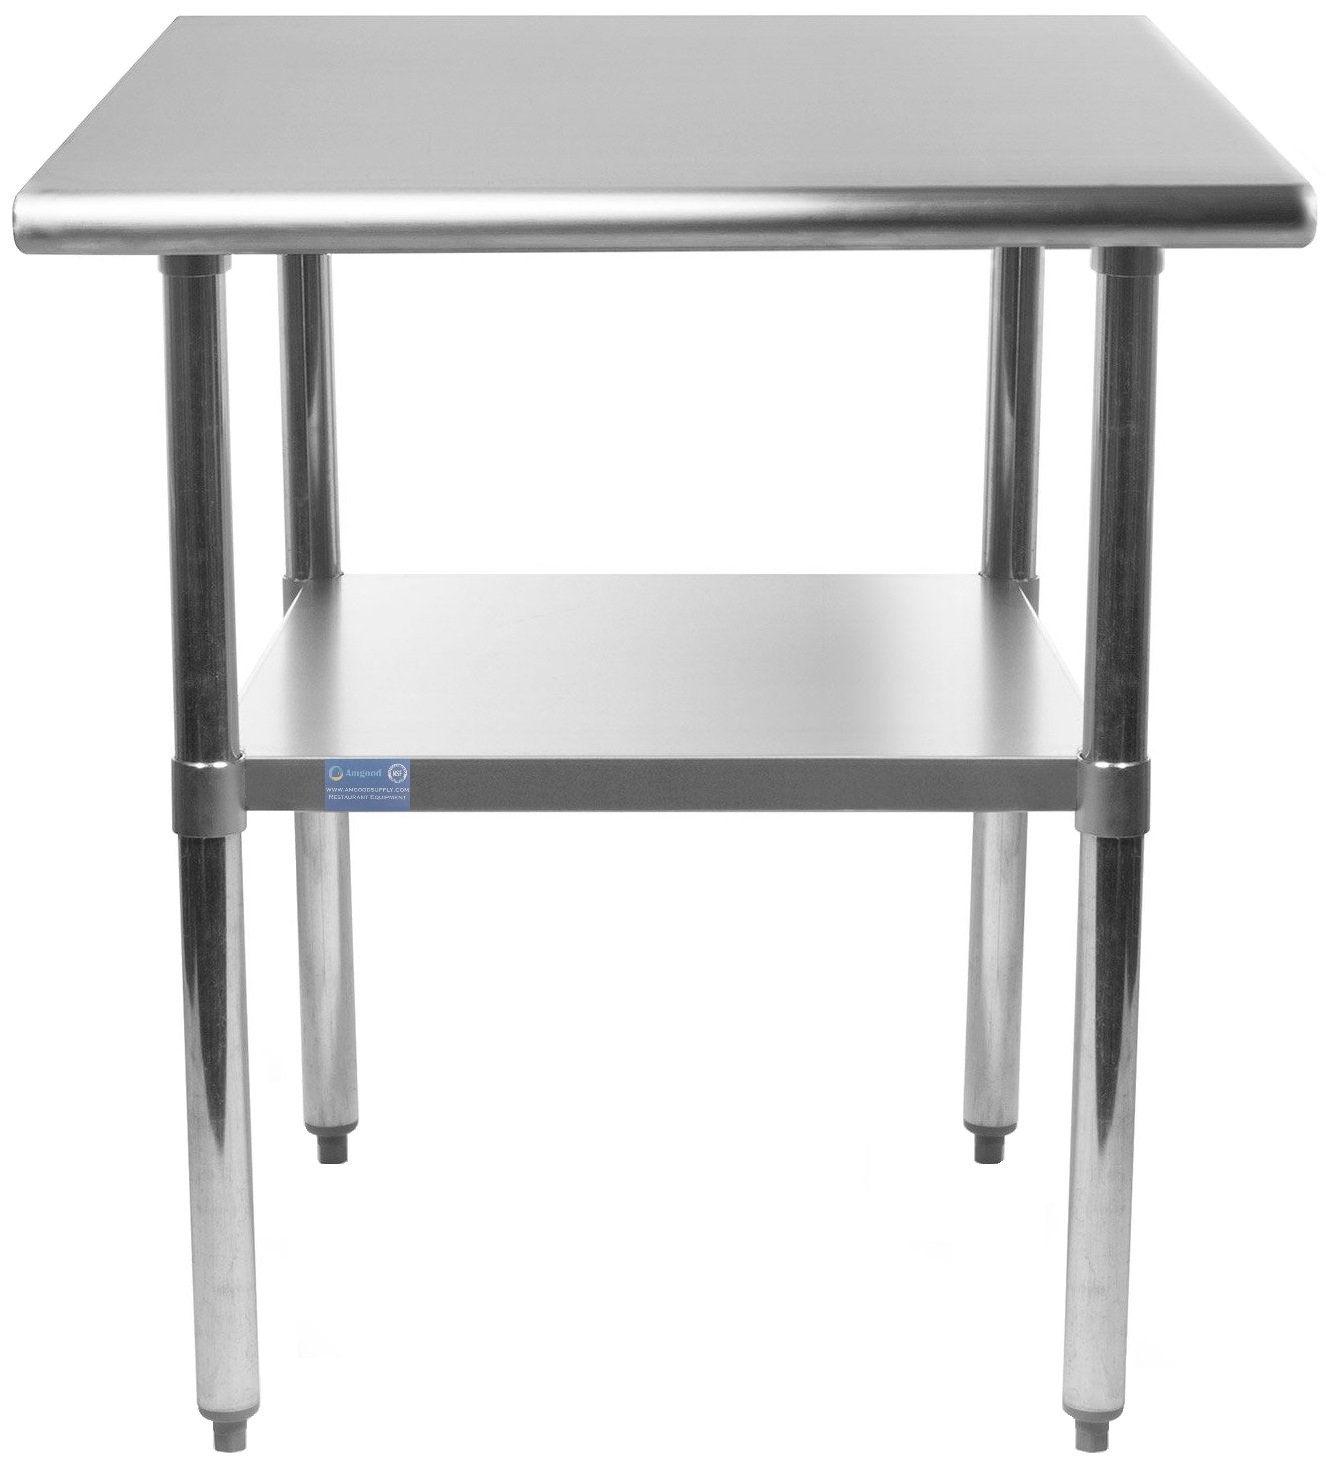 30'' X 12'' Stainless Steel Work Table with Under-Shelf | NSF Certified | Kitchen Island Food Prep | Laundry Garage Utility Bench